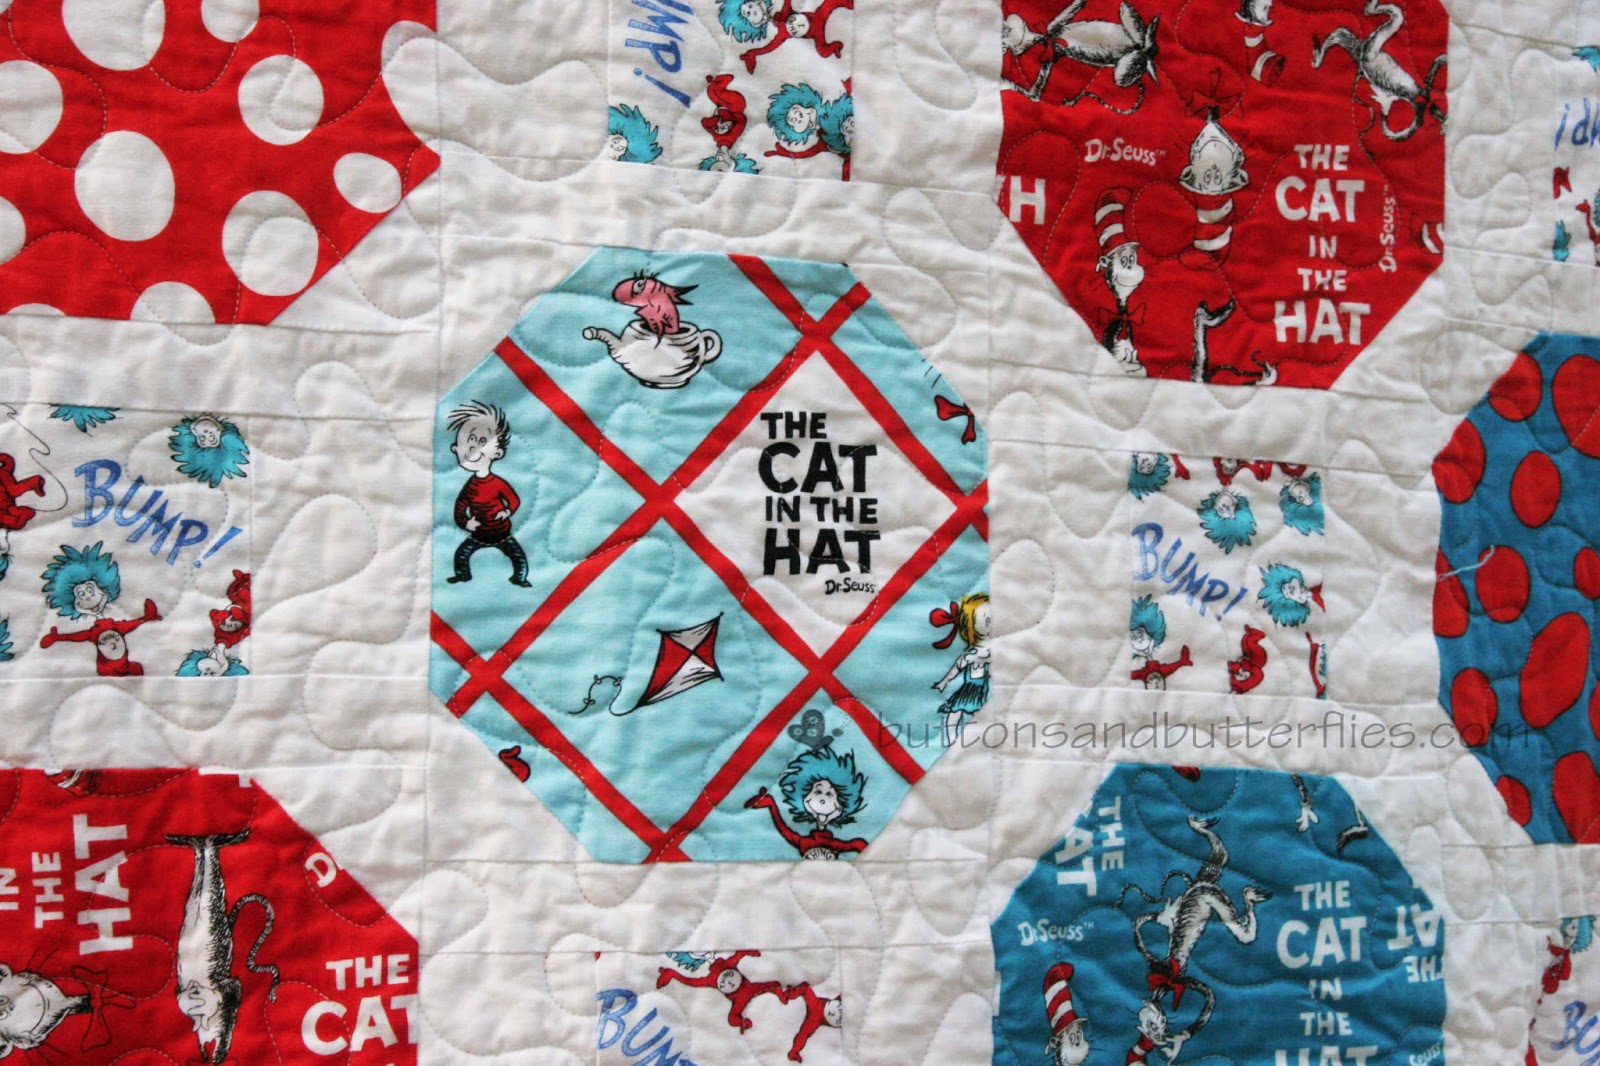 Cotton Dr Seuss The Cat in the Hat Celebration Allover Blue Cotton Fabric Print by the Yard by Robert Kaufman ade-10795-203